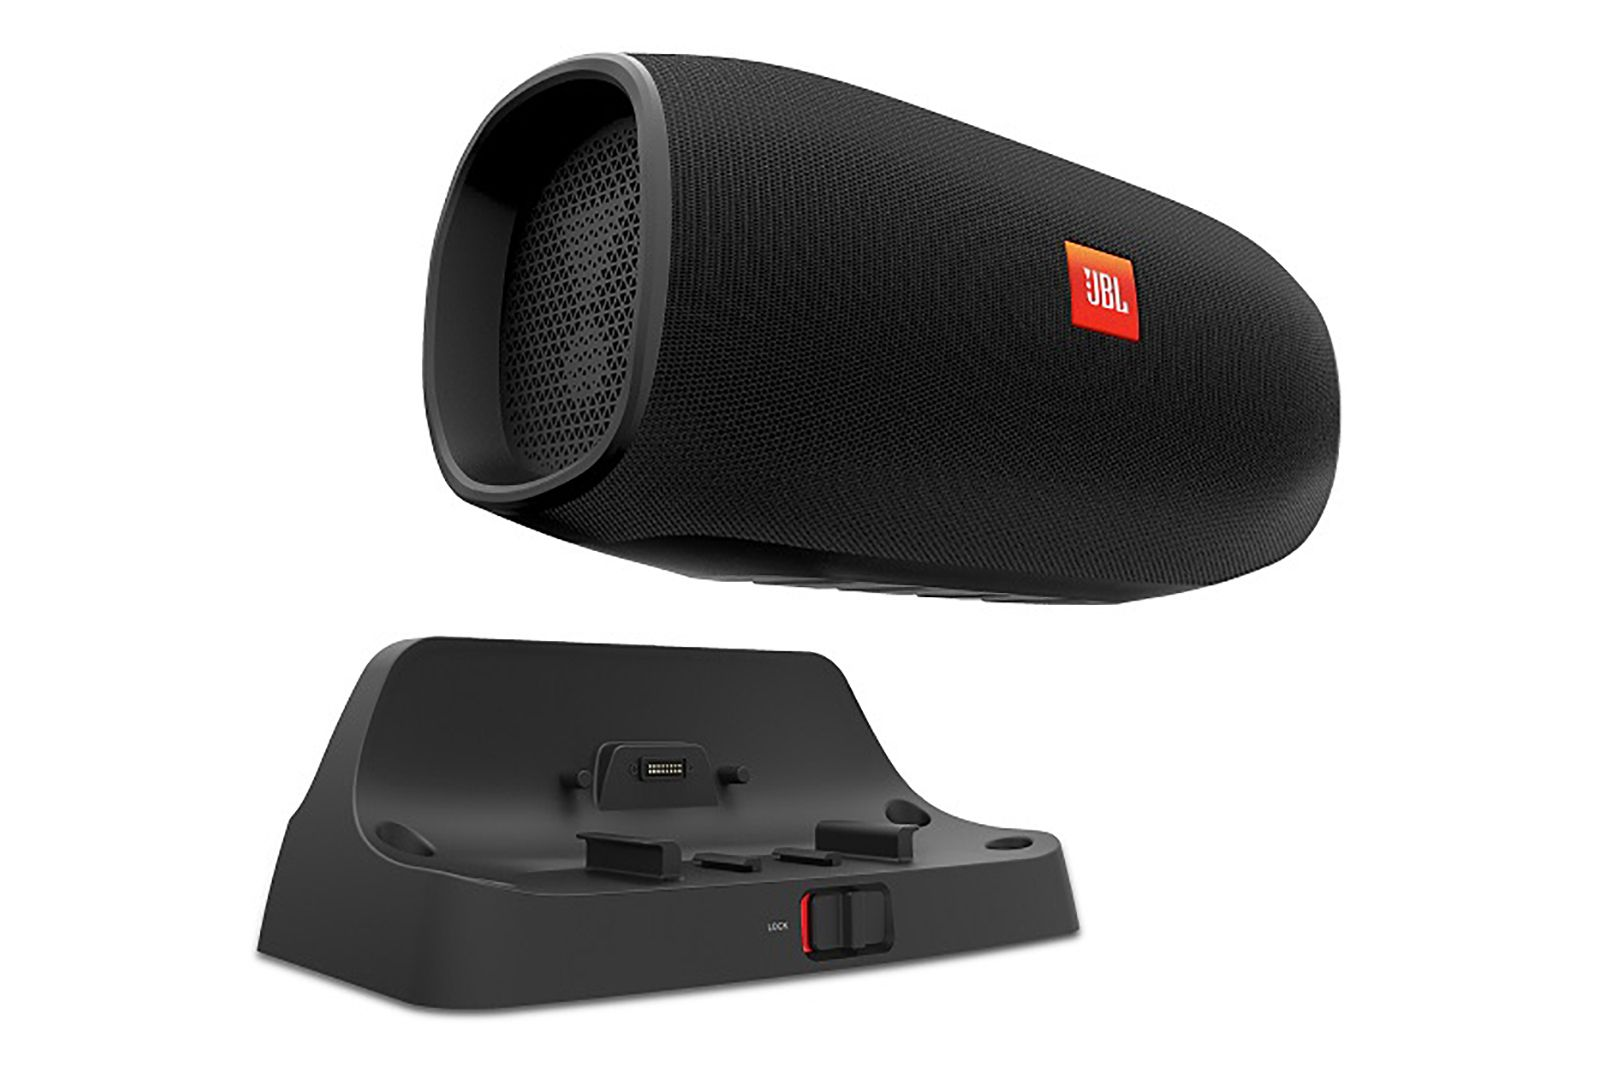 JBL's BassPro Go is a hybrid car speaker that you can undock and use as a